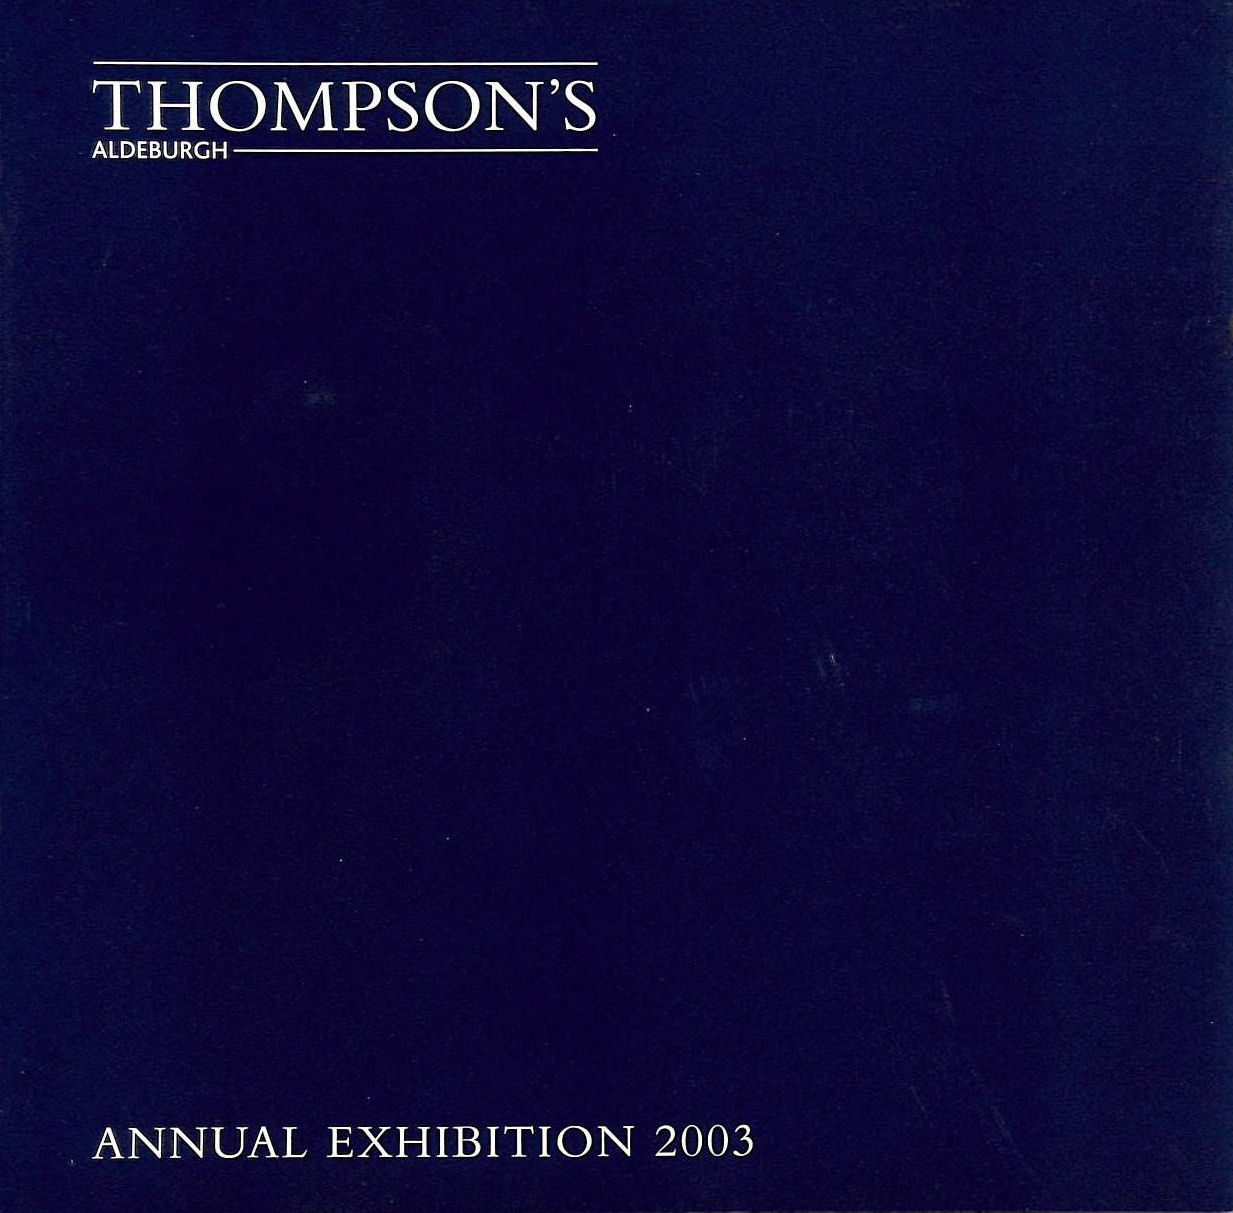 Image for Annual Exhibition 2003